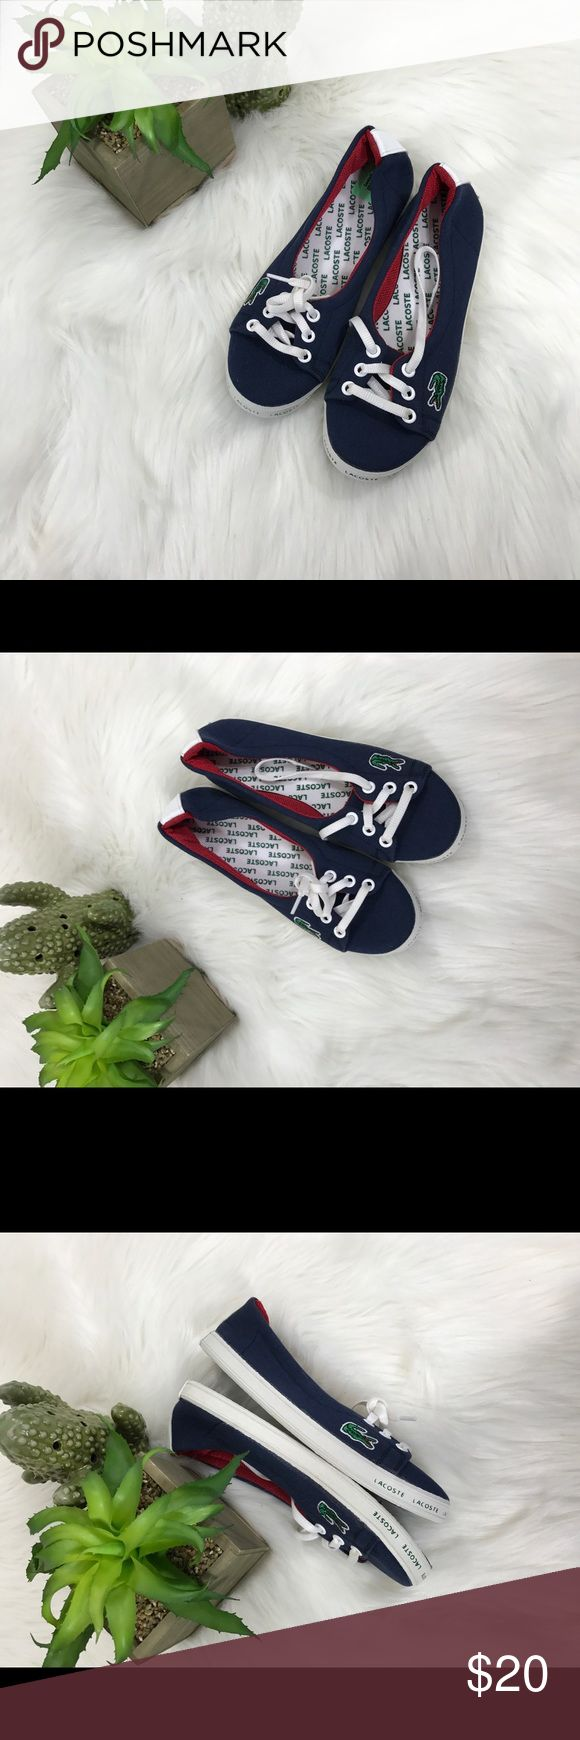 Lacoste blue shoes Size 36 kids Excellent condition  Navy blue According to the online size chart, these are us 3.5 kids Lacoste Shoes